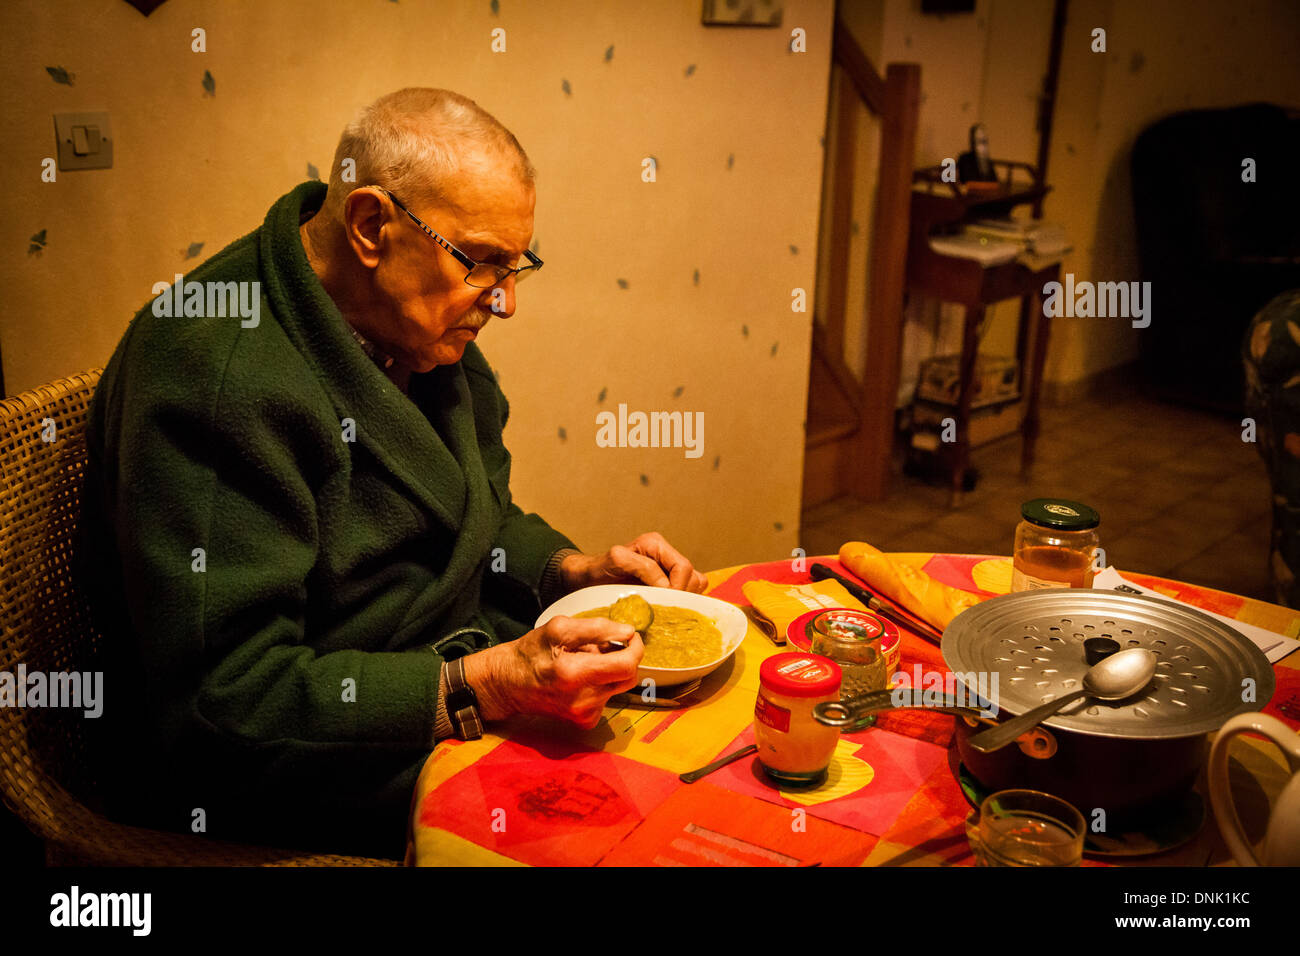 ILLUSTRATION OF AGEING AT HOME, ELDERLY PERSON AT HOME HAVING A MEAL - Stock Image